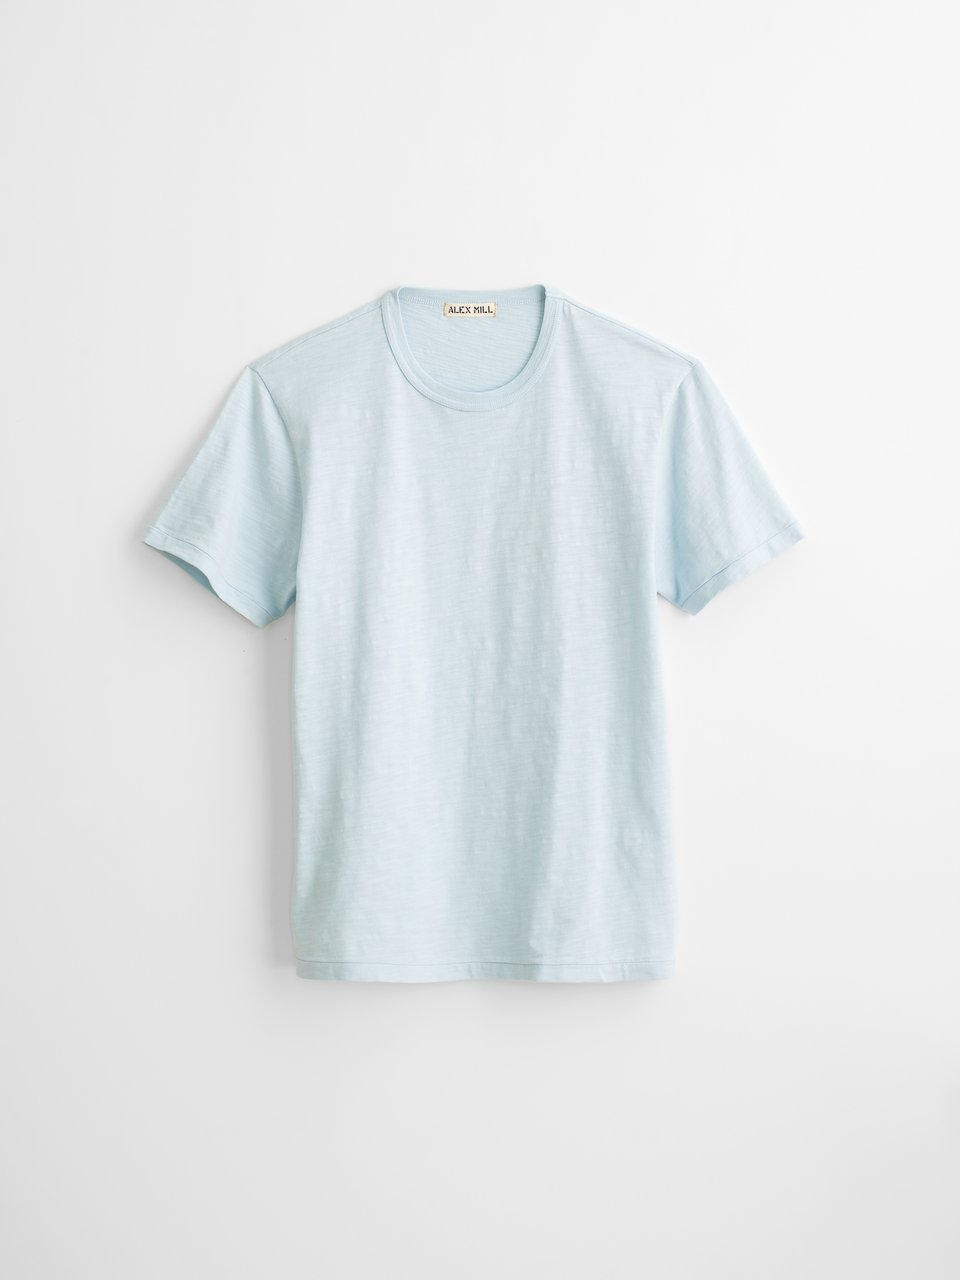 Standard T-Shirt in Slub Cotton (Calm Blue)